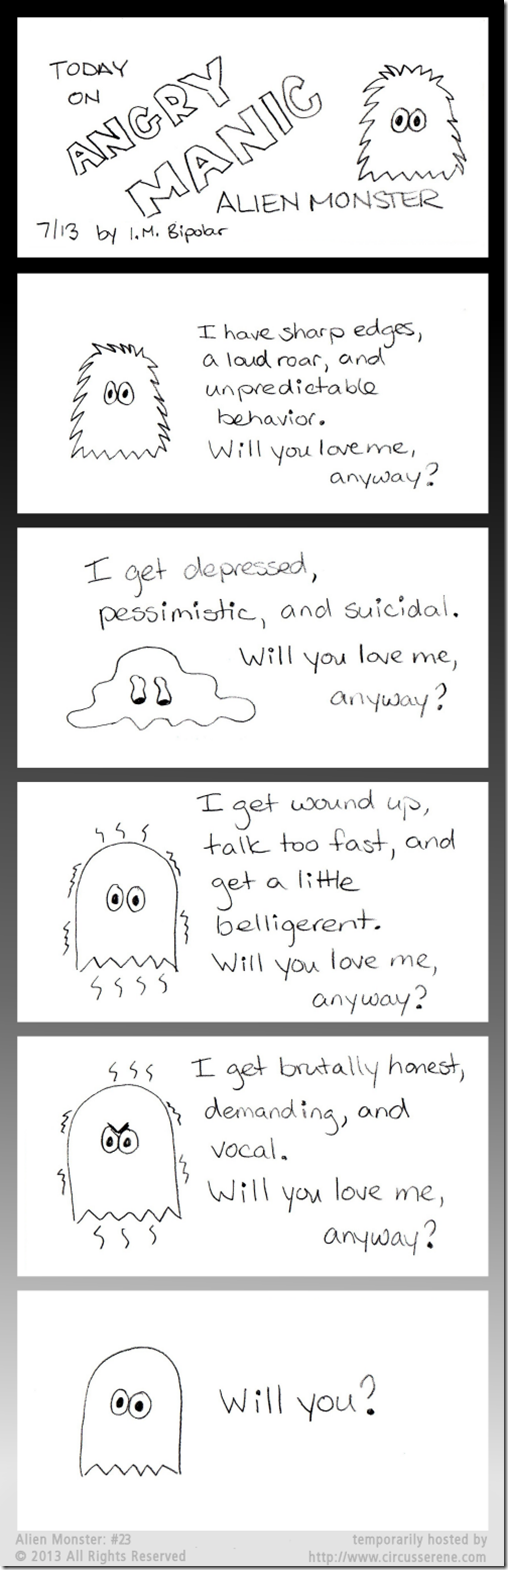 Today On Angry Manic Alien Monster: Comic #23